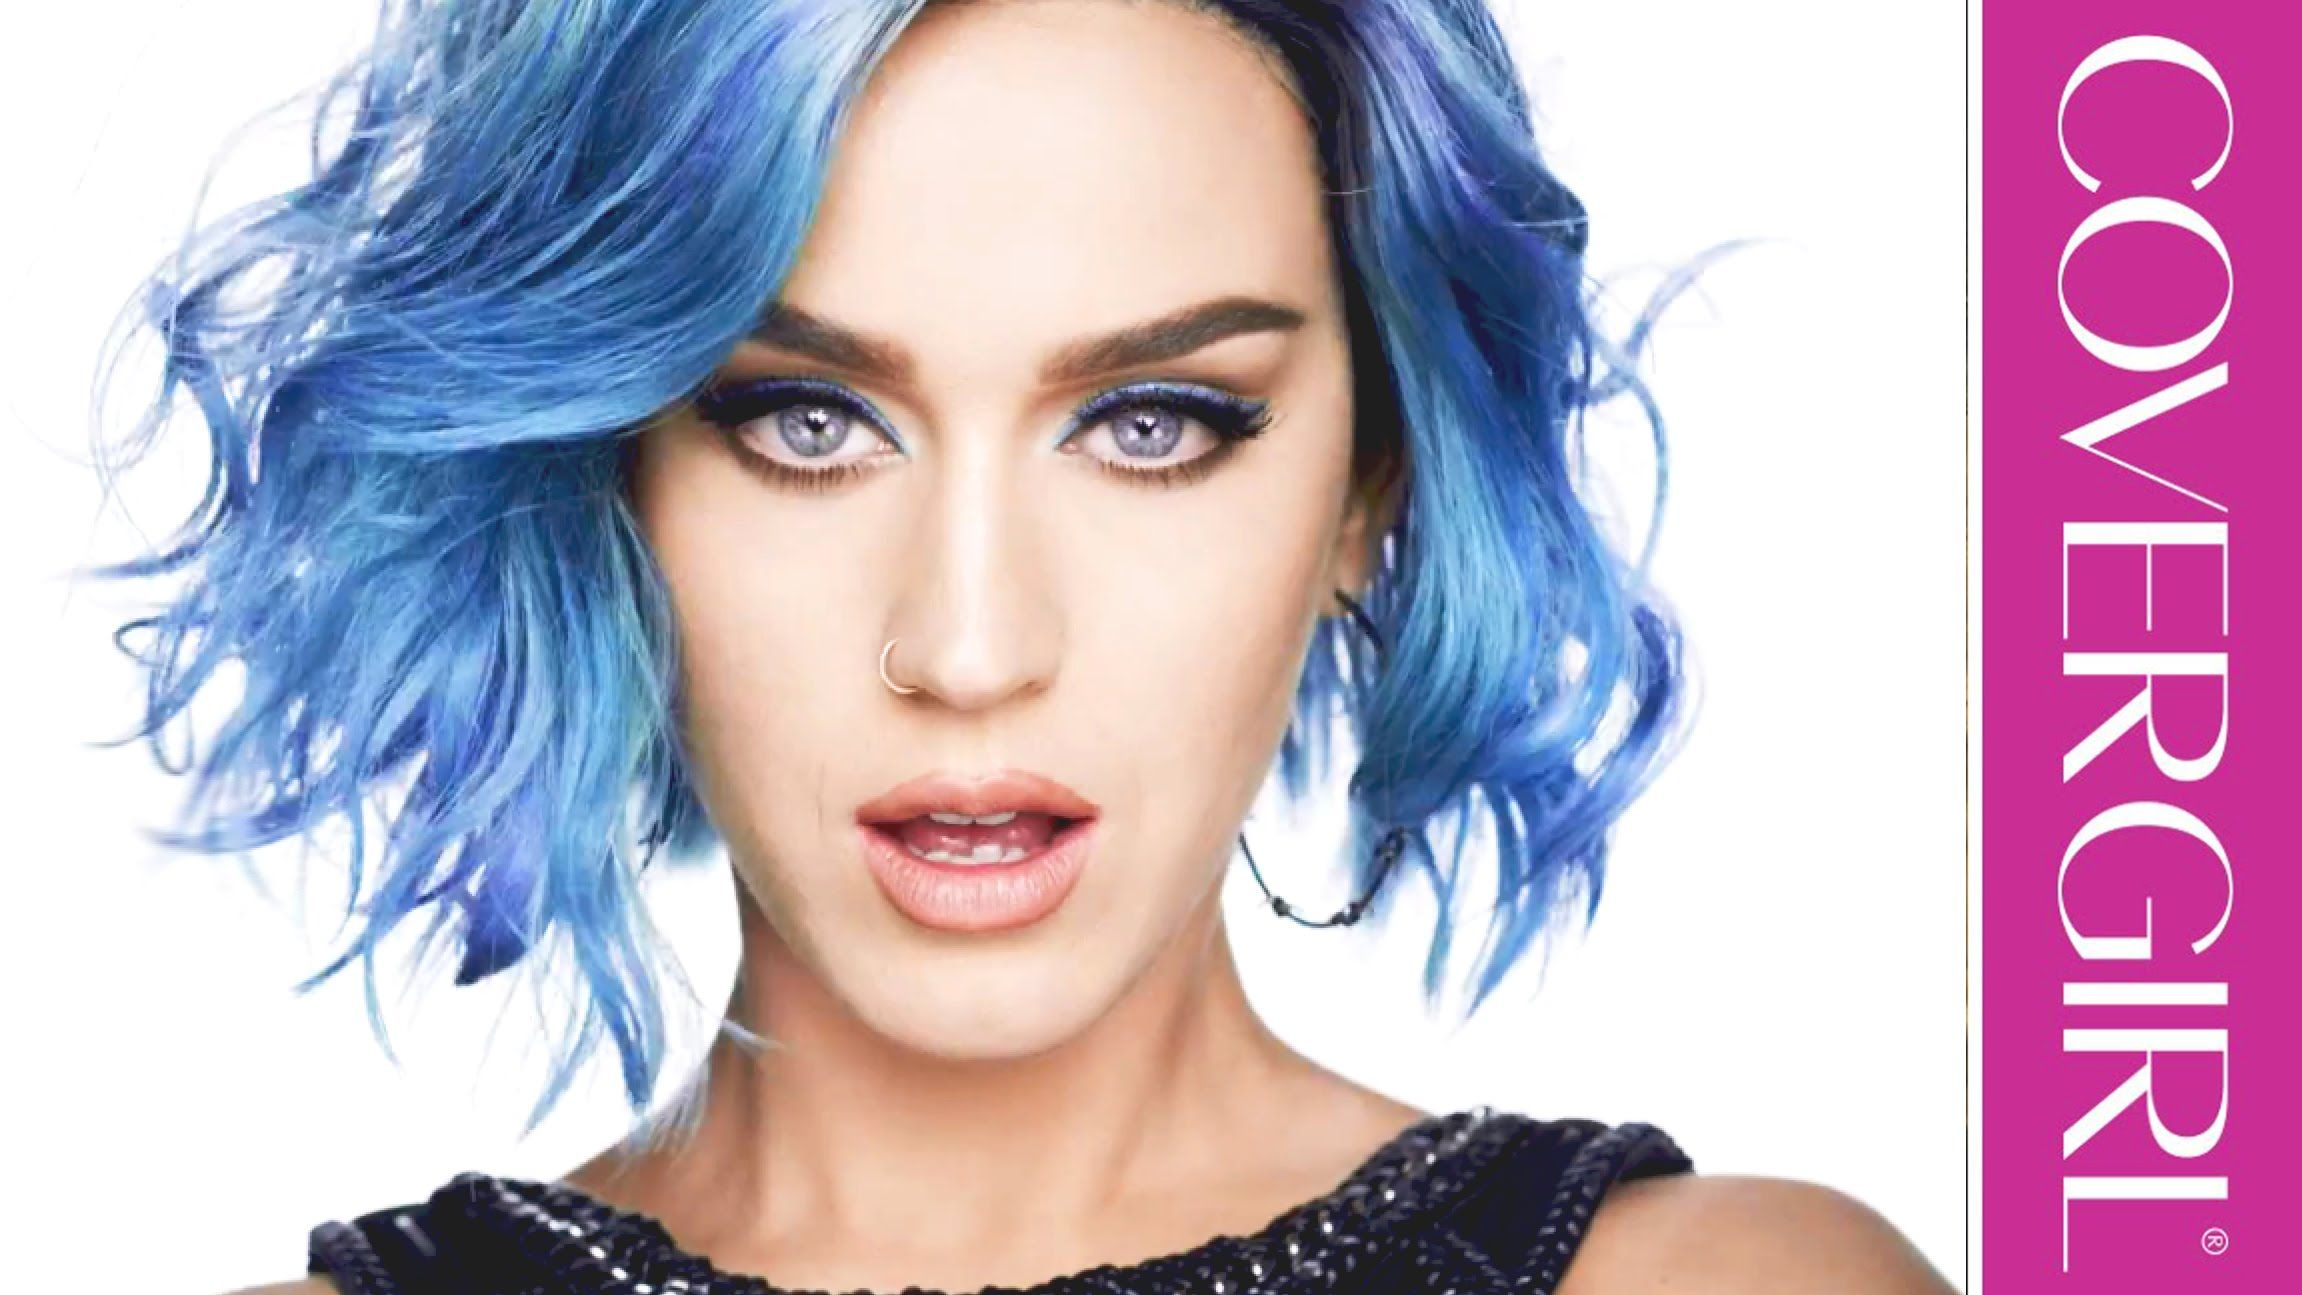 Katy Perry Rocks the Big Game with Four Make Up Looks